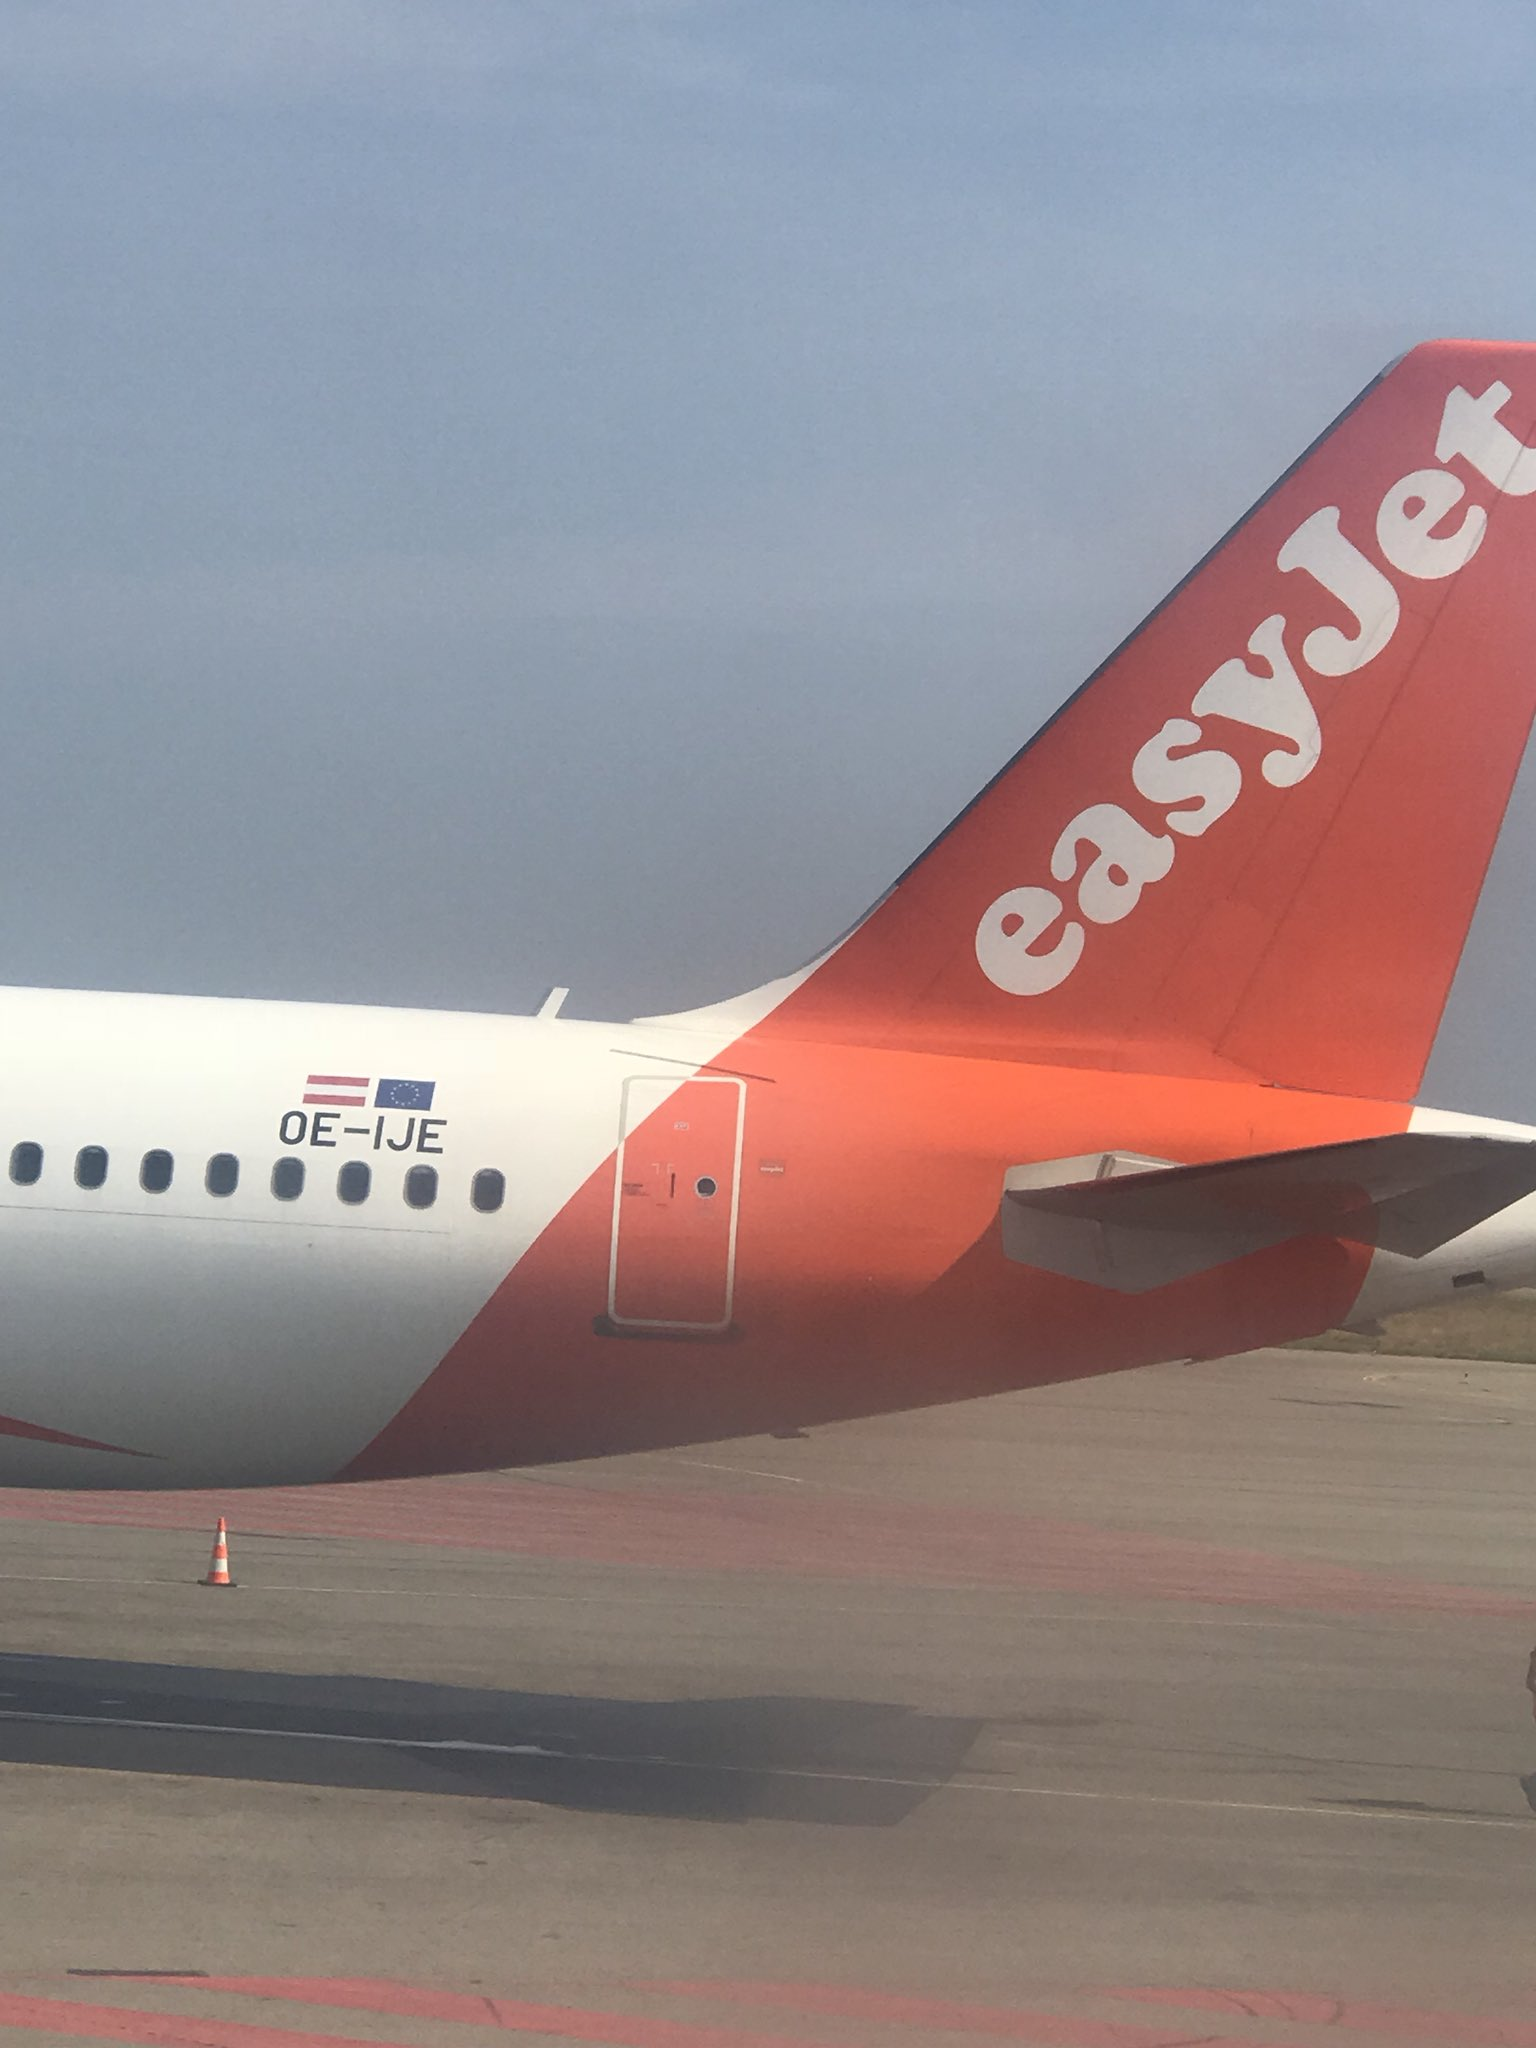 One thing I don't think a lot of British people realise is that all the 🇬🇧 Union Flags have been taken off every single EasyJet plane and replaced with a 🇦🇹.  EasyJet has re-registered as an Austrian business, to avoid leaving the EU.  What will the UK be left with? https://t.co/HntWCLstBH